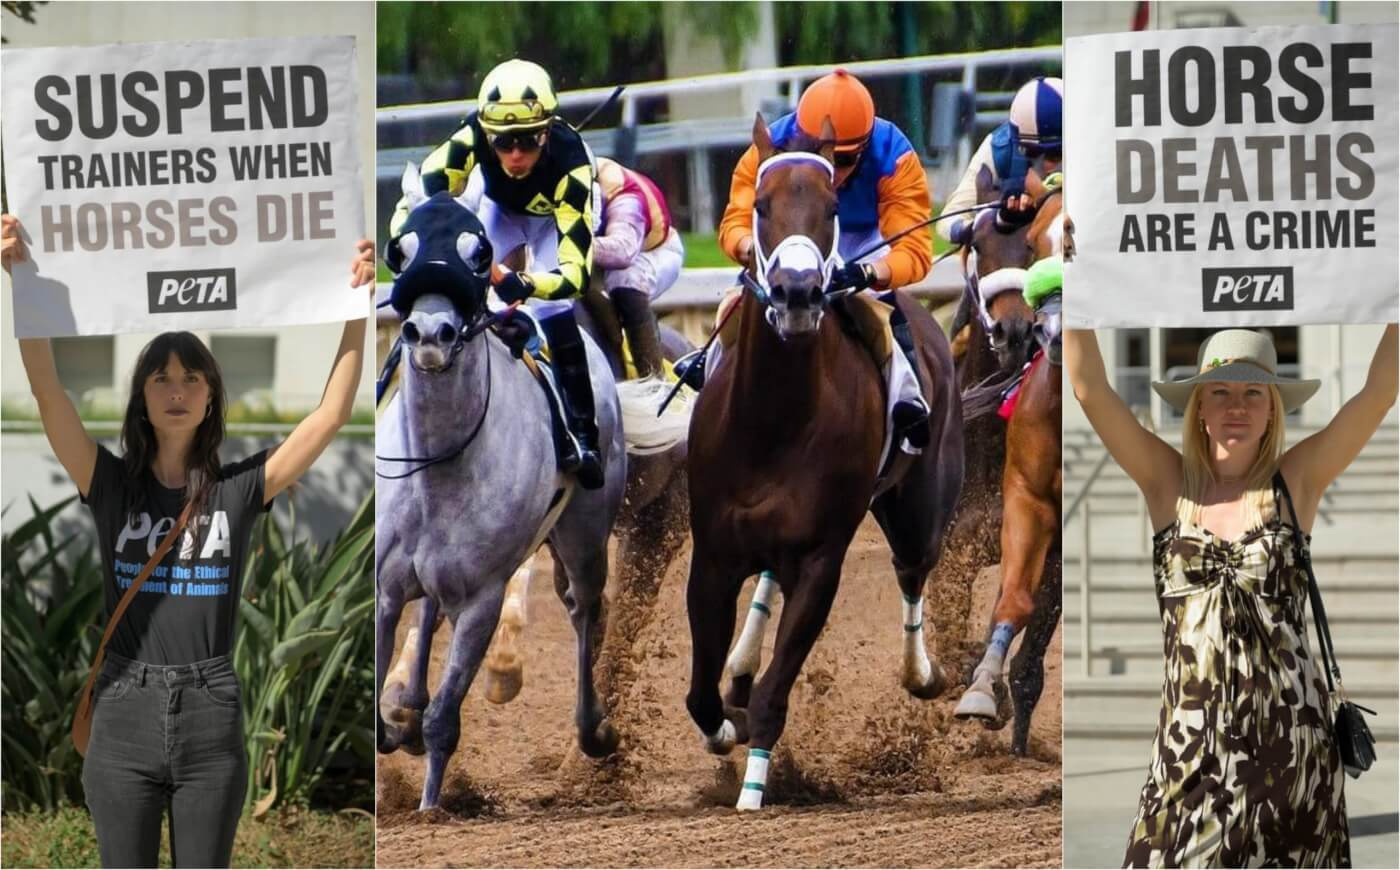 Mox Nix Death Prompts Promise for Ohio Racetrack Rules Changes